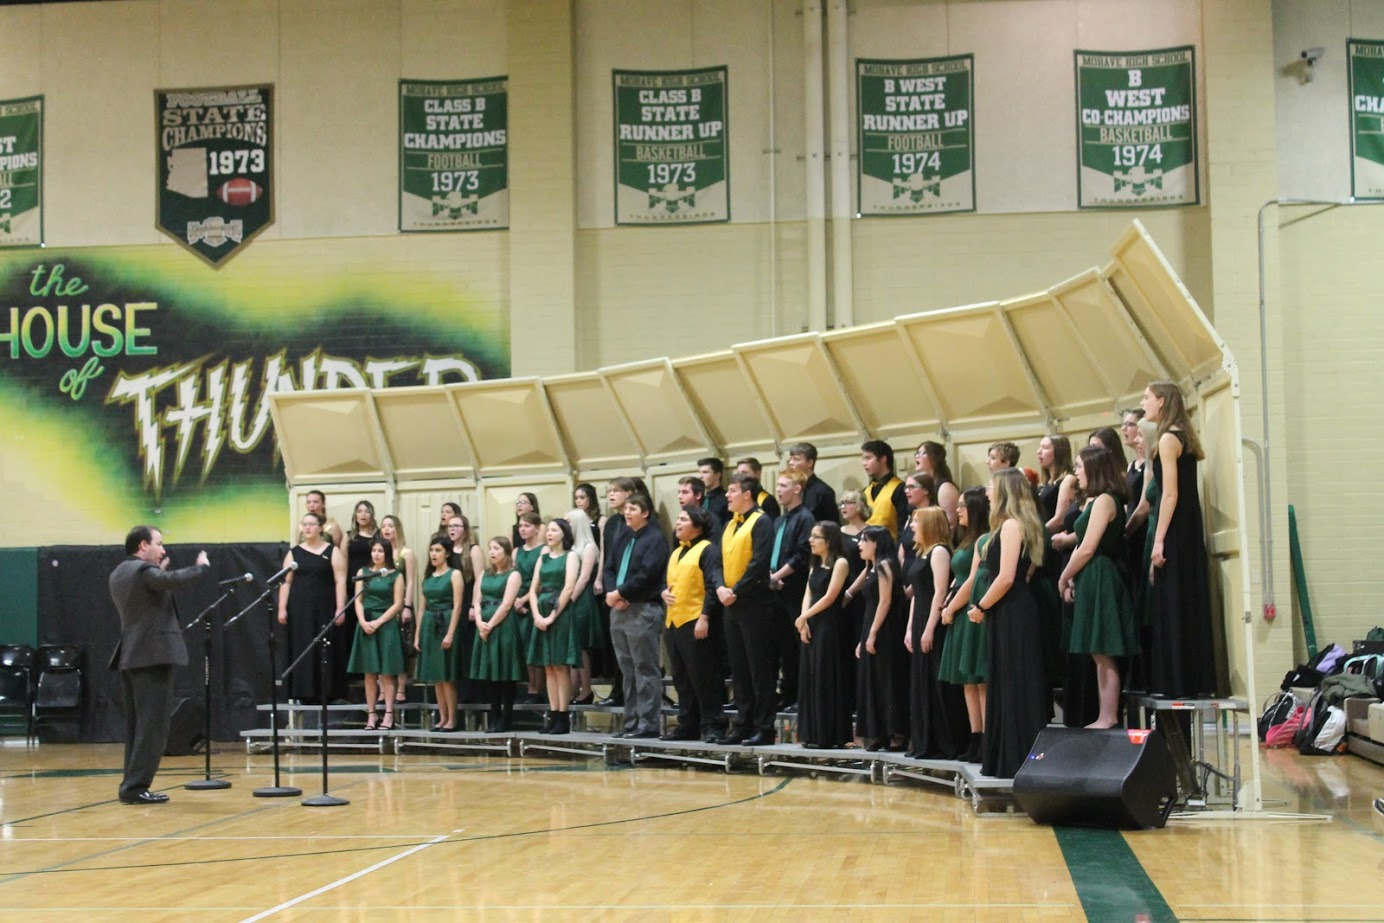 MHS Choir Director Cameron Pruett (l) Leads Students In A Performance During Last Year's Veterans' Day Assembly. Photo Courtesy Colorado River Union High School District